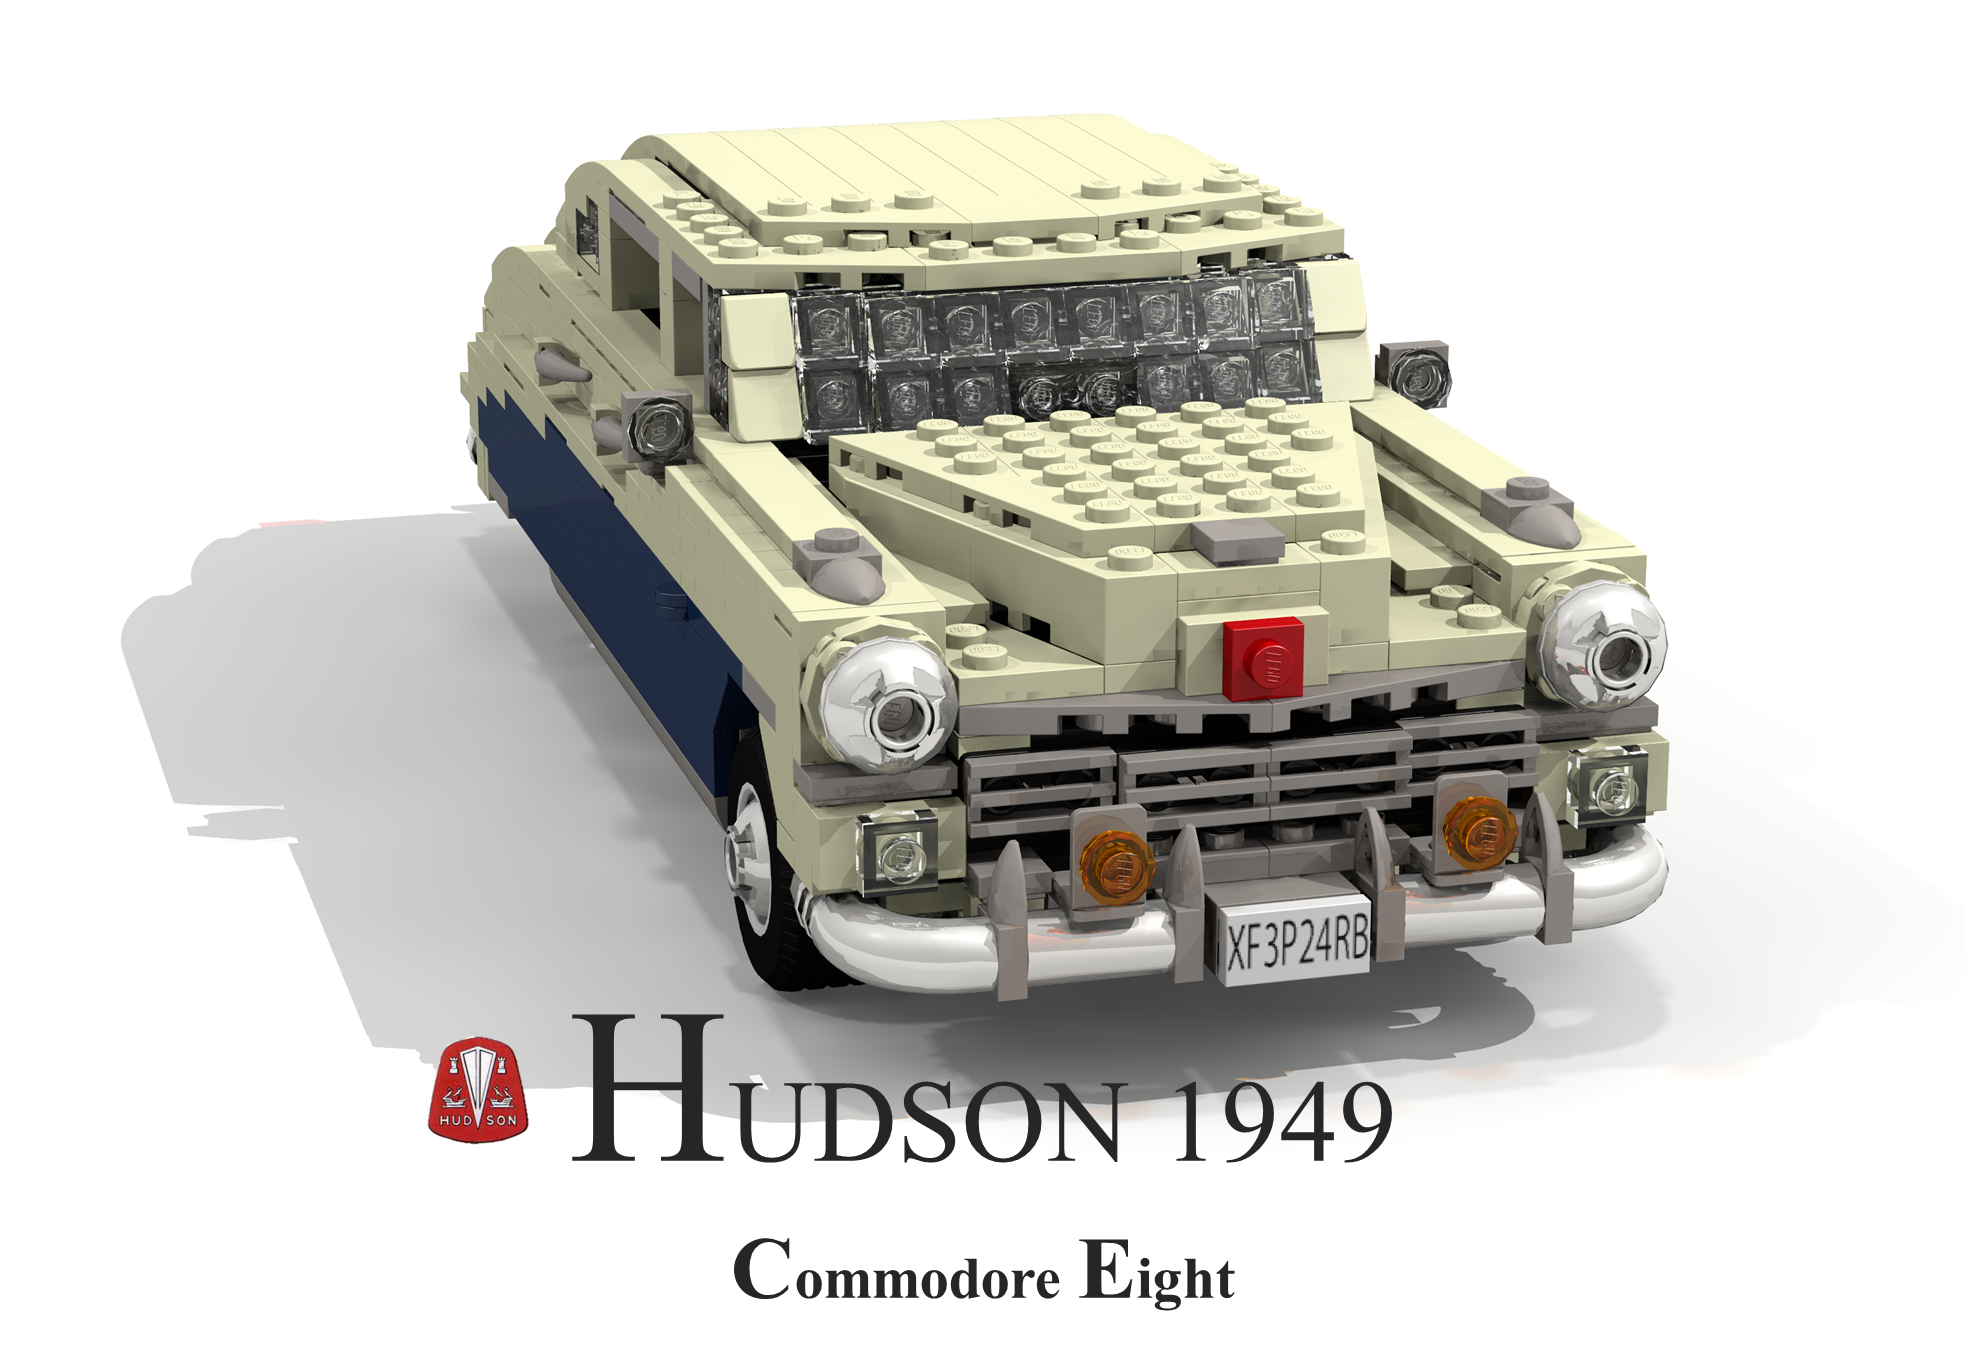 hudson_commodore_eight_1949_01.png